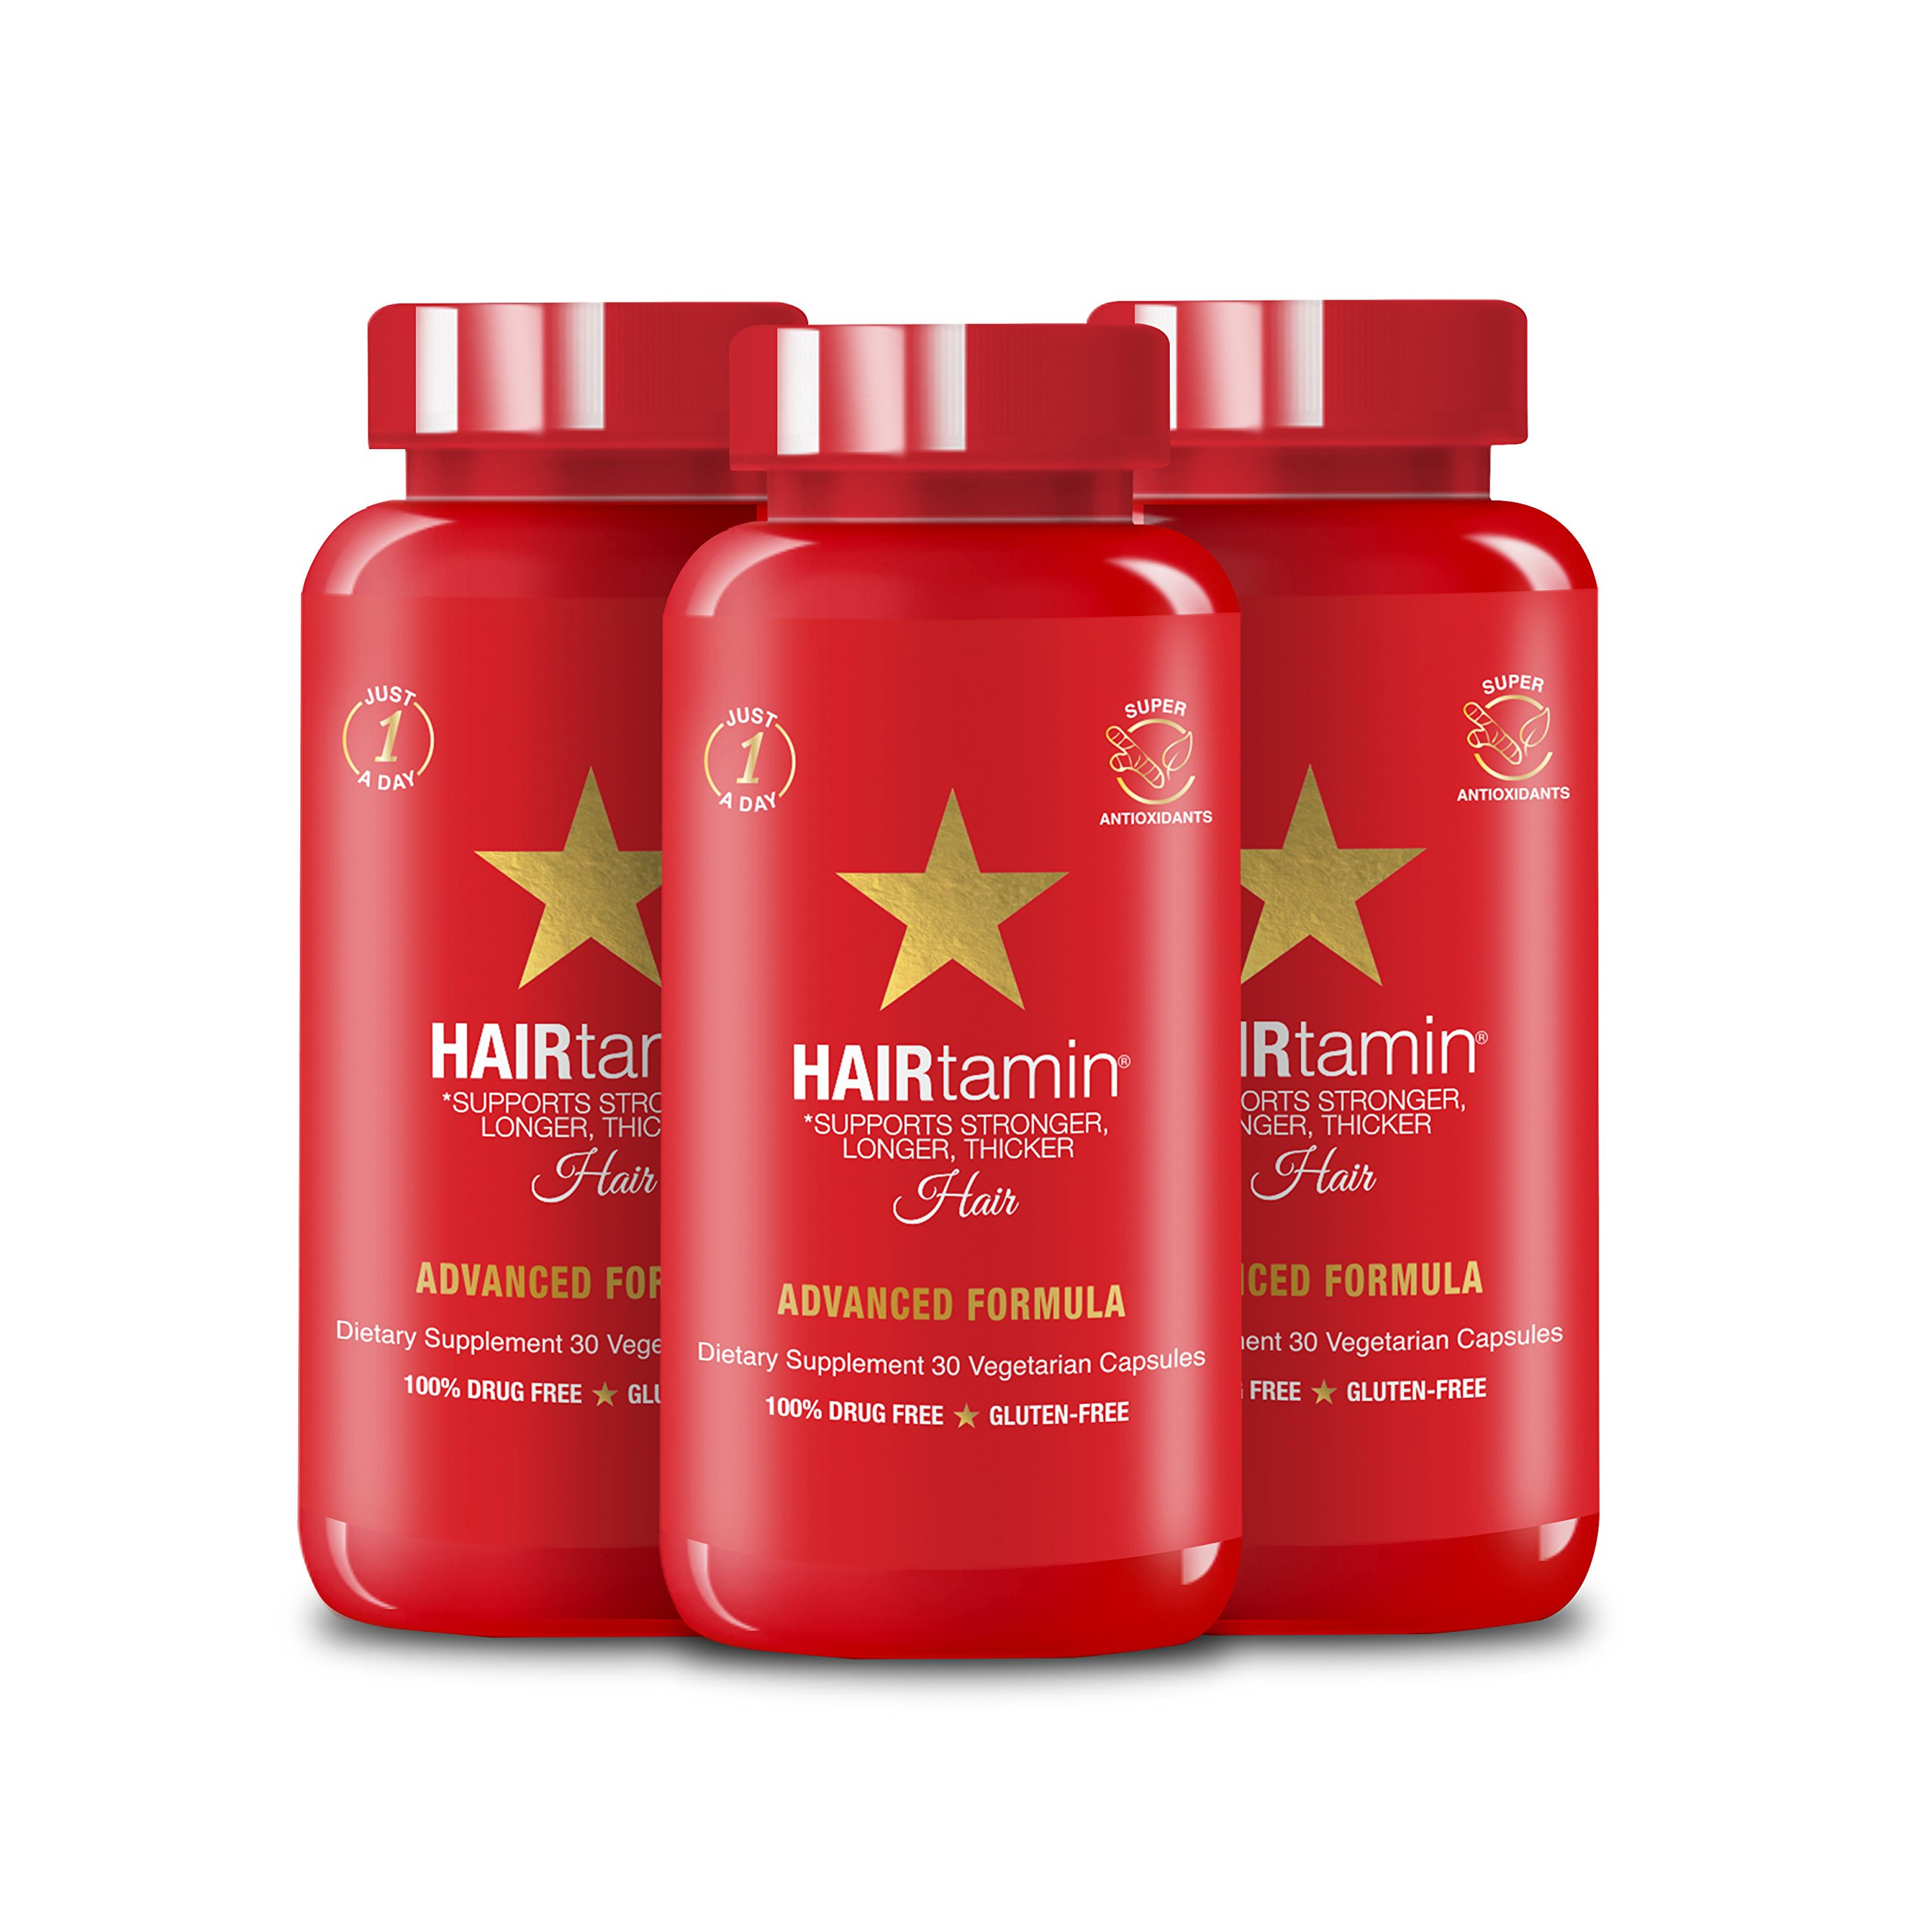 HAIRtamin Fast Hair Growth Biotin Vitamins Gluten Free thirty Vegetarian Capsules Supports Stronger Longer Thicker Hair Reduces Hair Loss and Thinning All Natural Supplement three pack